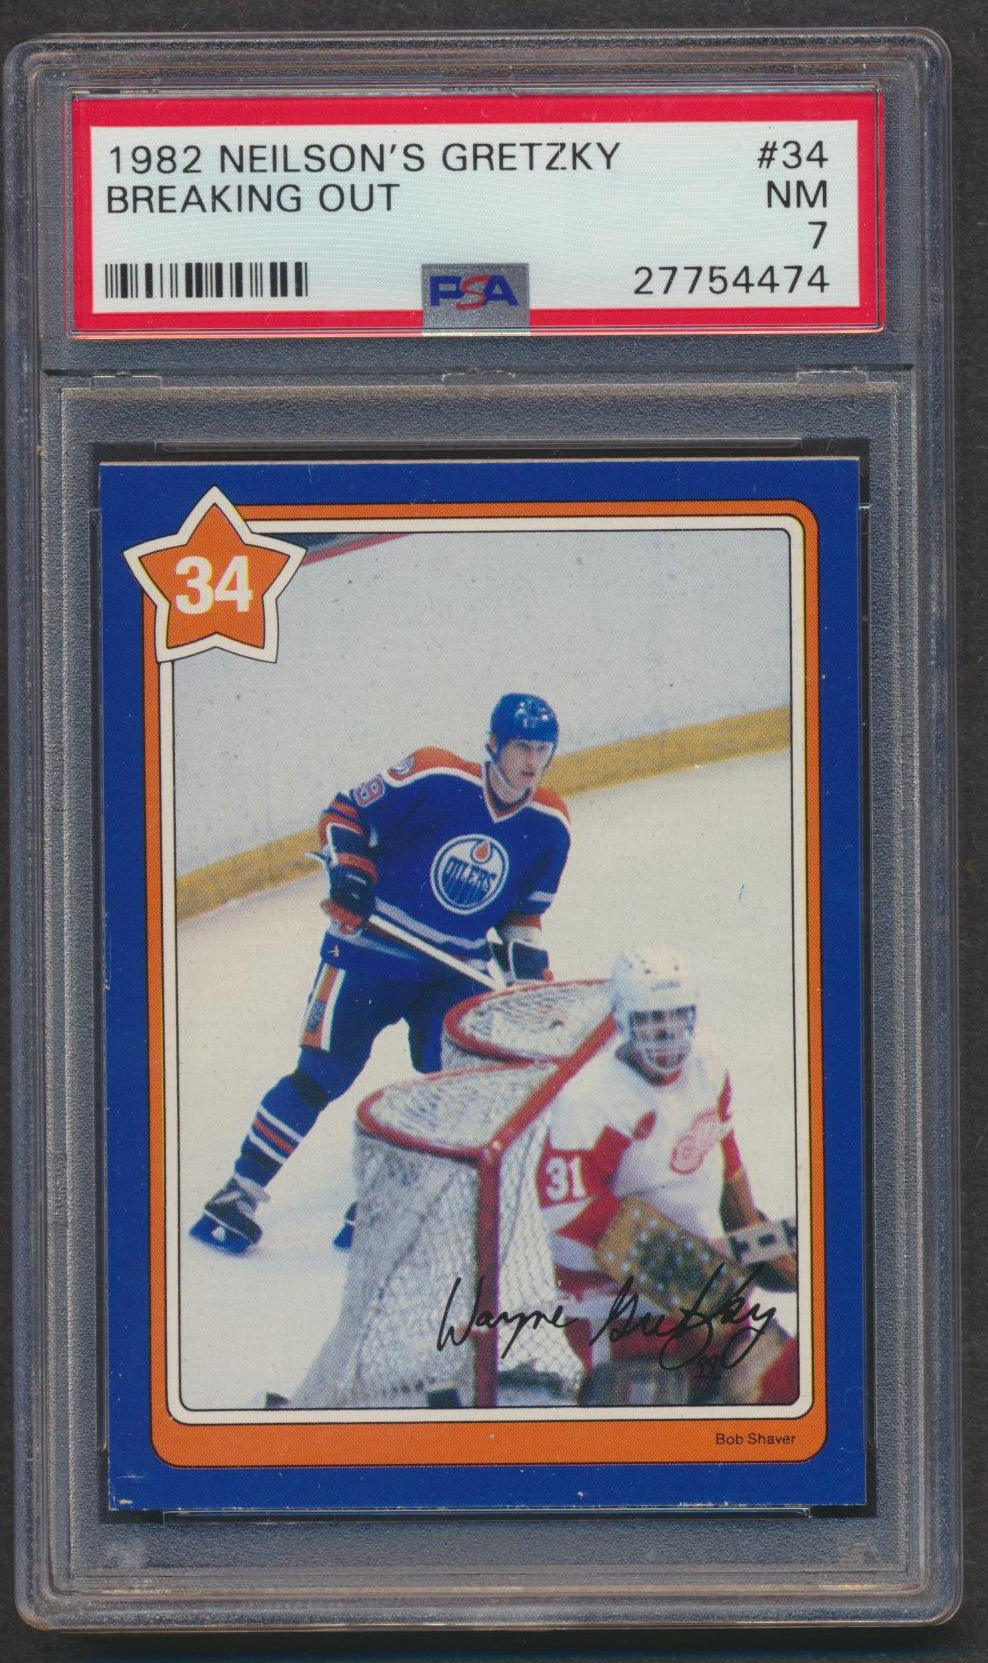 Neilson's 1982 Gretzky Card #34 PSA 7  Breaking Out  Edmonton Oilers